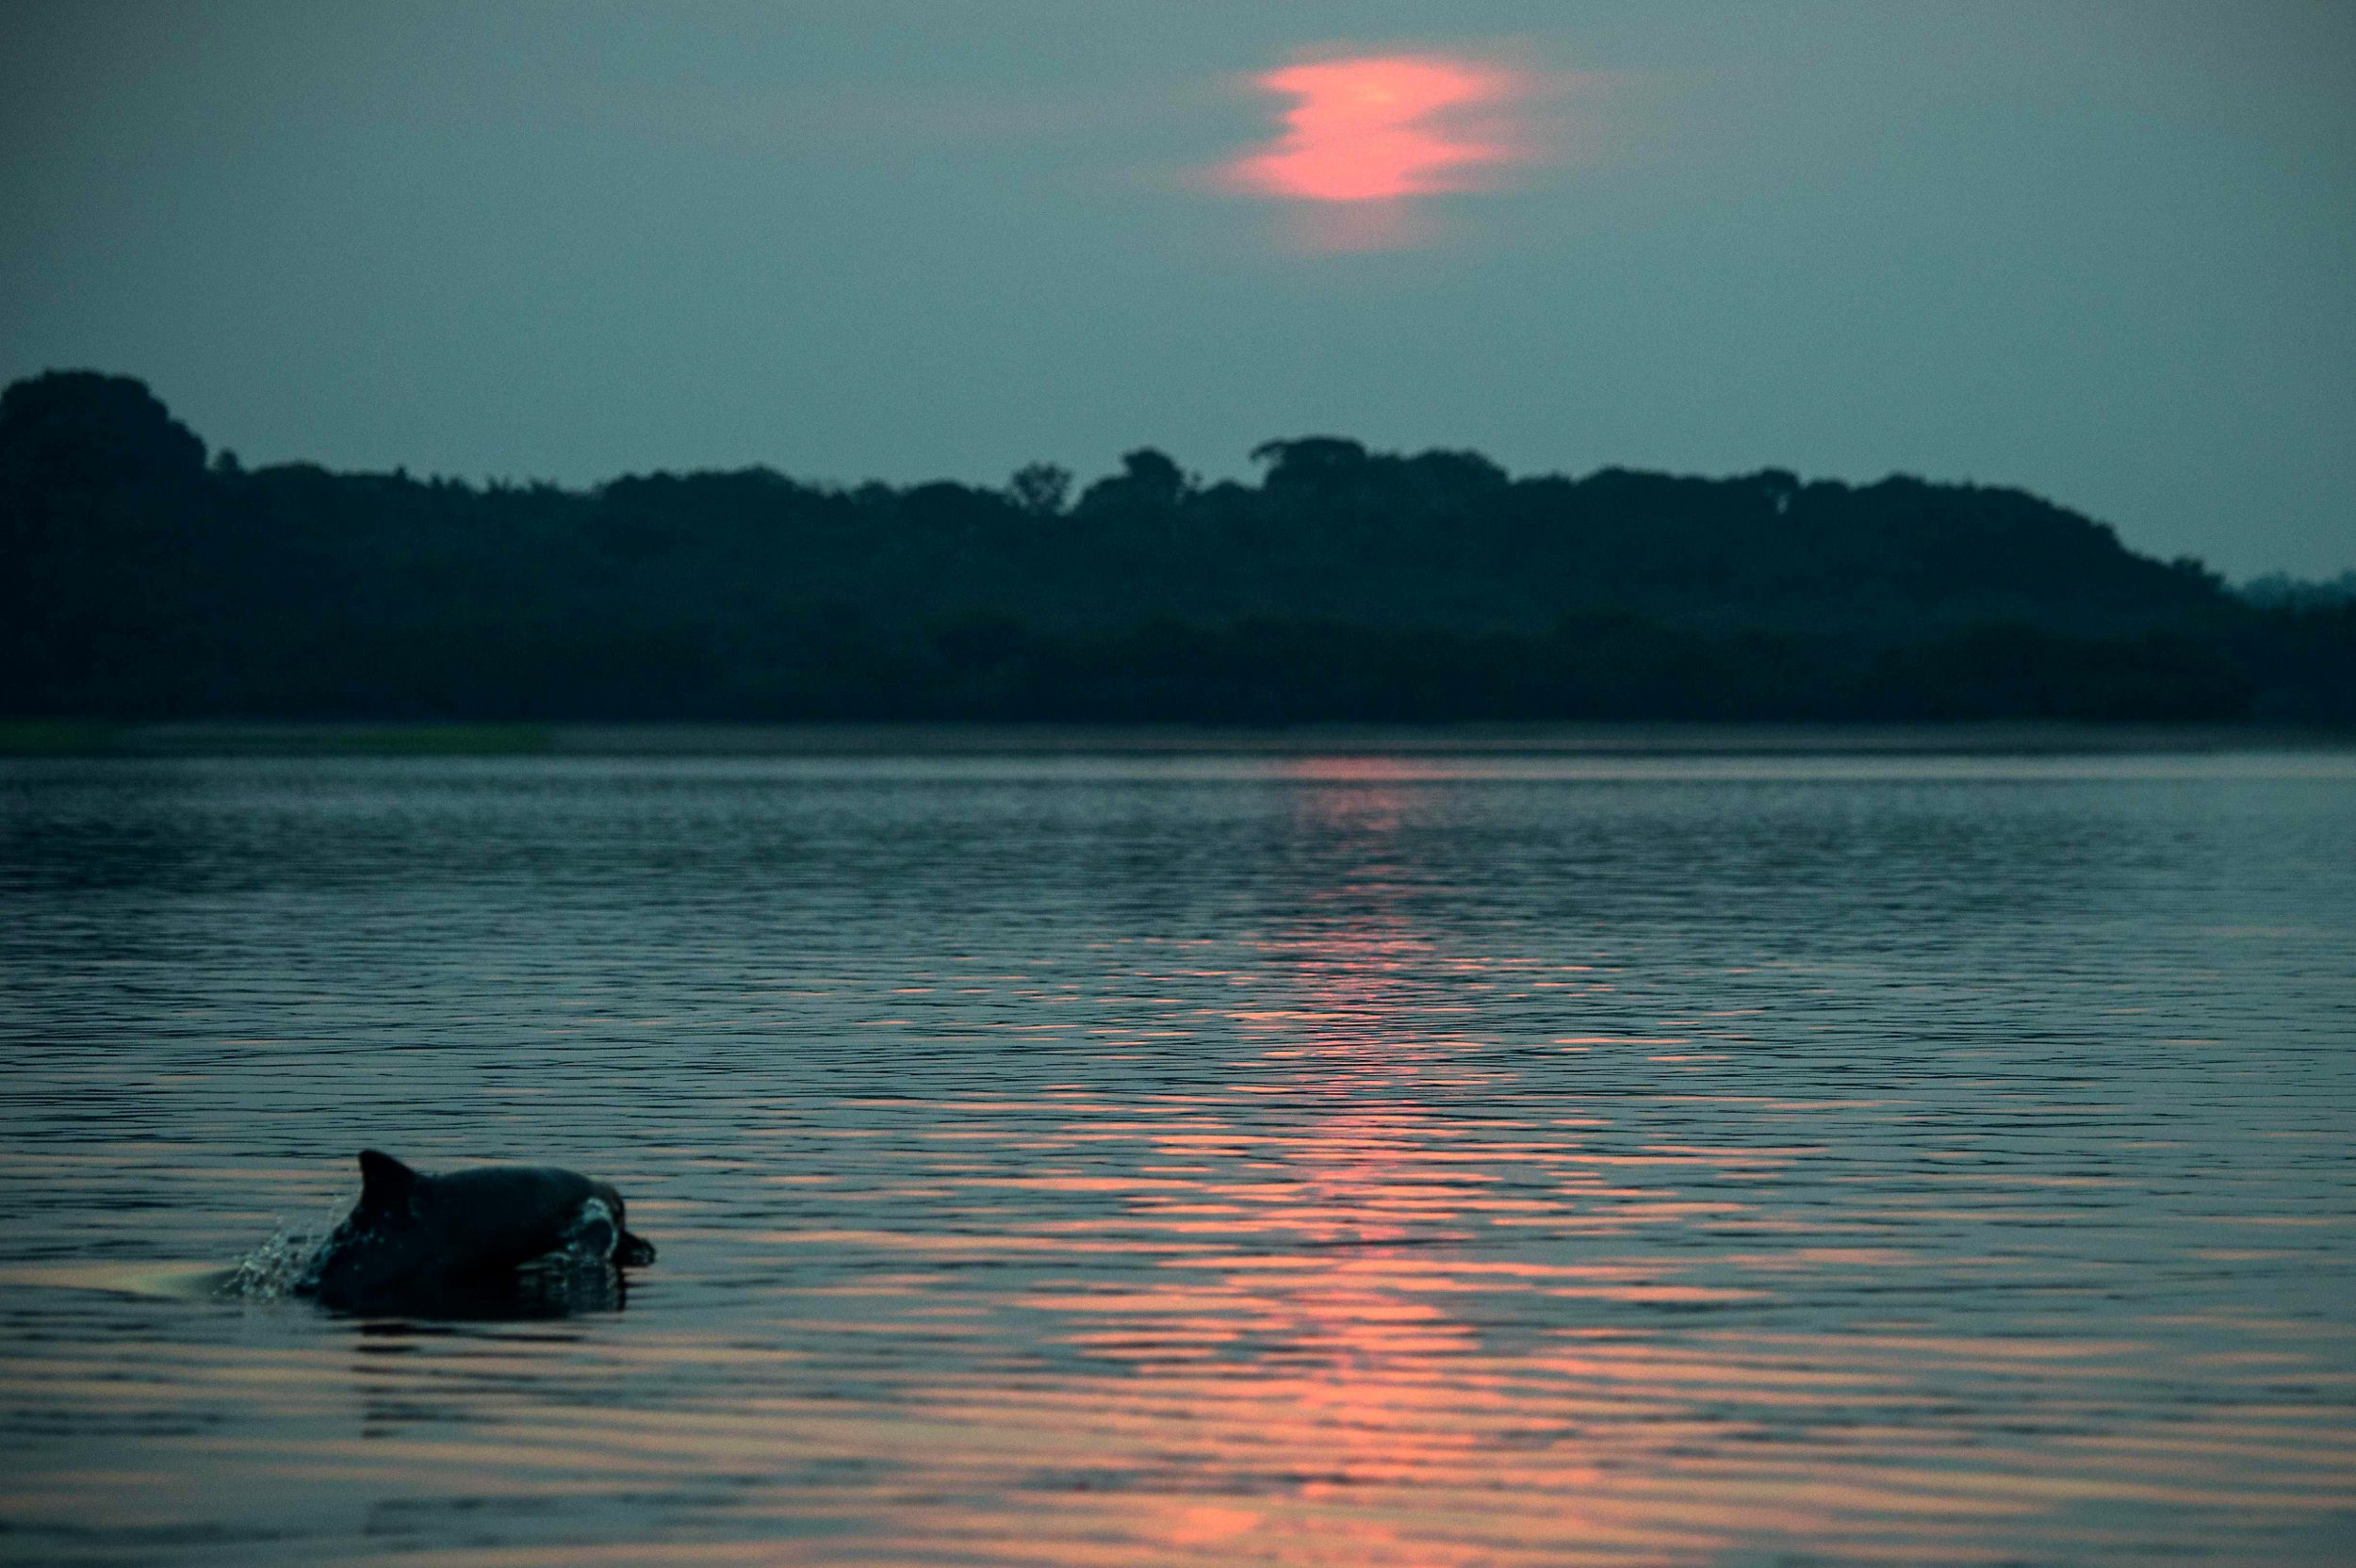 Amazon rainforest, Brazil, Rio Negro, Amazon dolphin